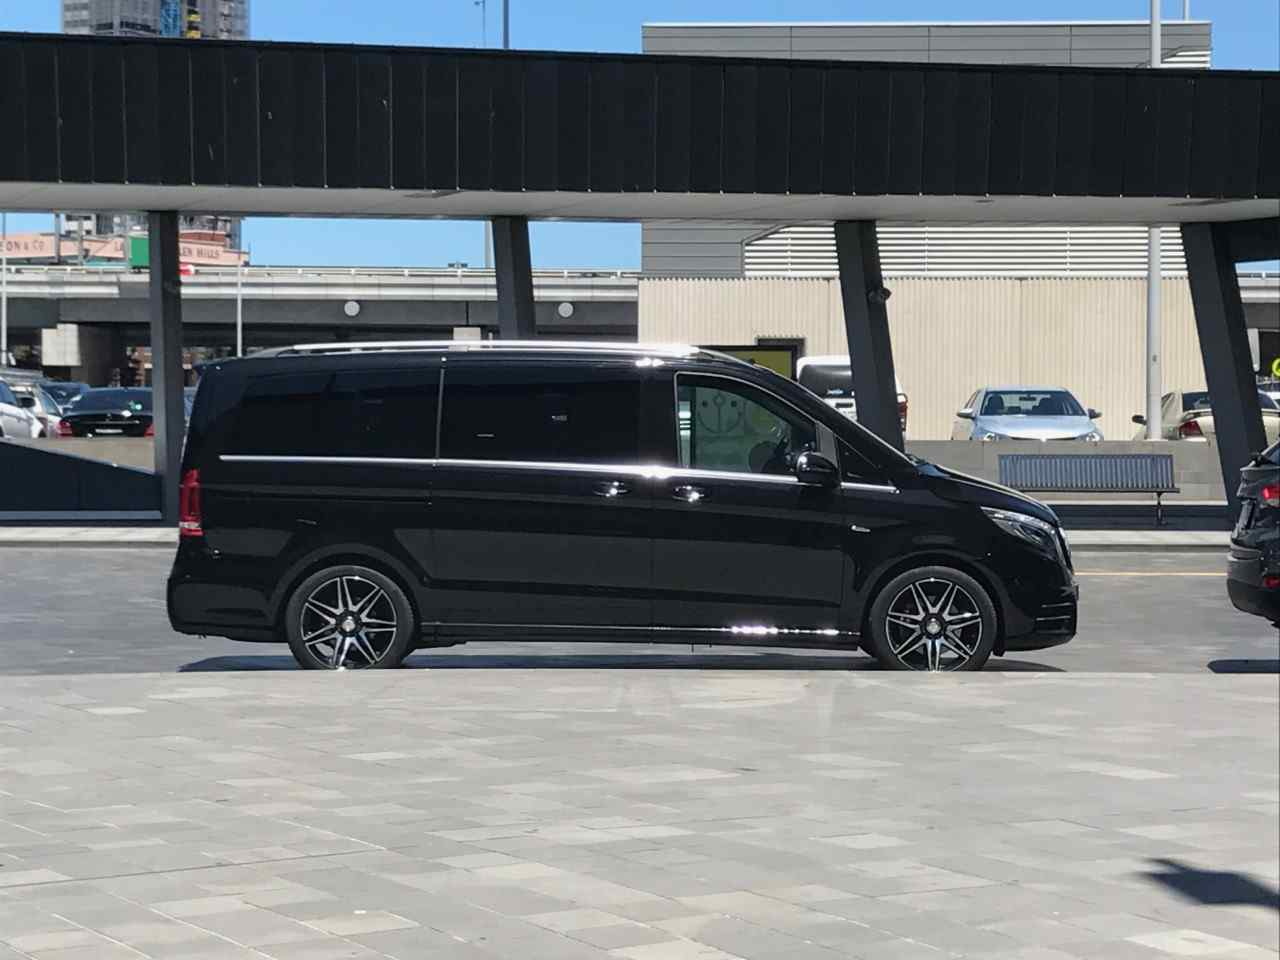 Chauffeur Van Melbourne airport transfer pick up drop-off